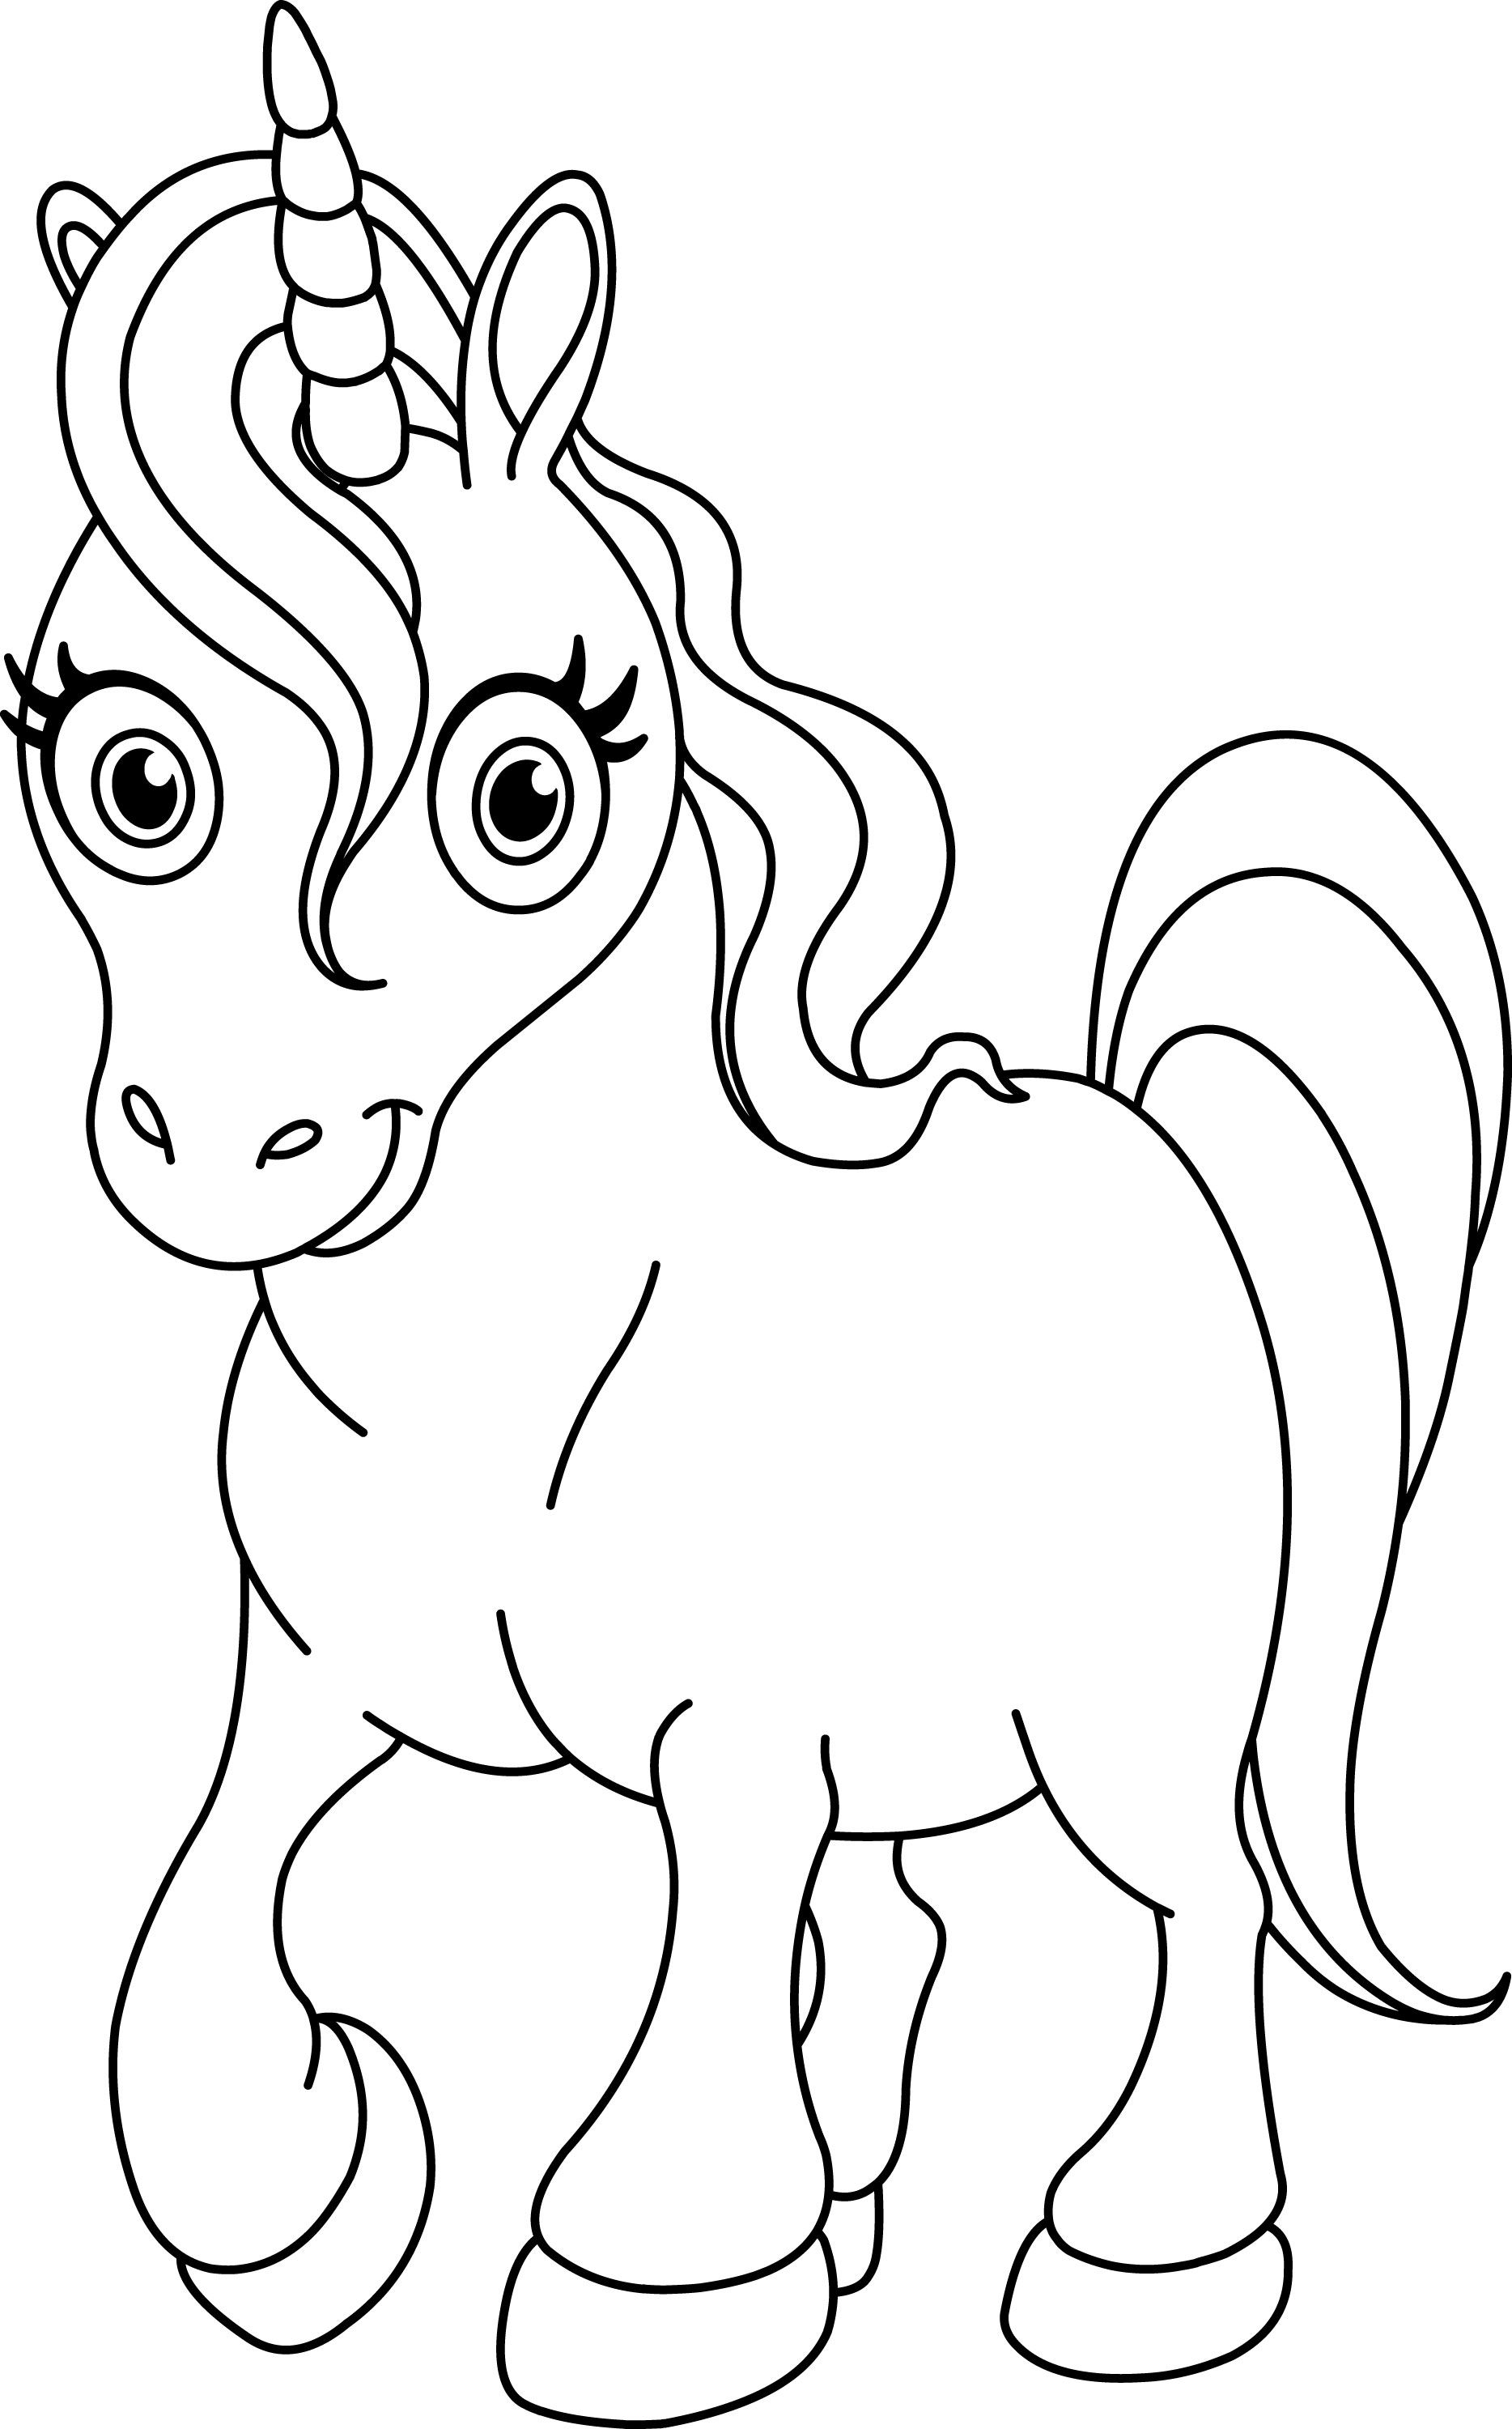 Pay Attention For This Explanation To Do The Unicorn Coloring Pages Printable